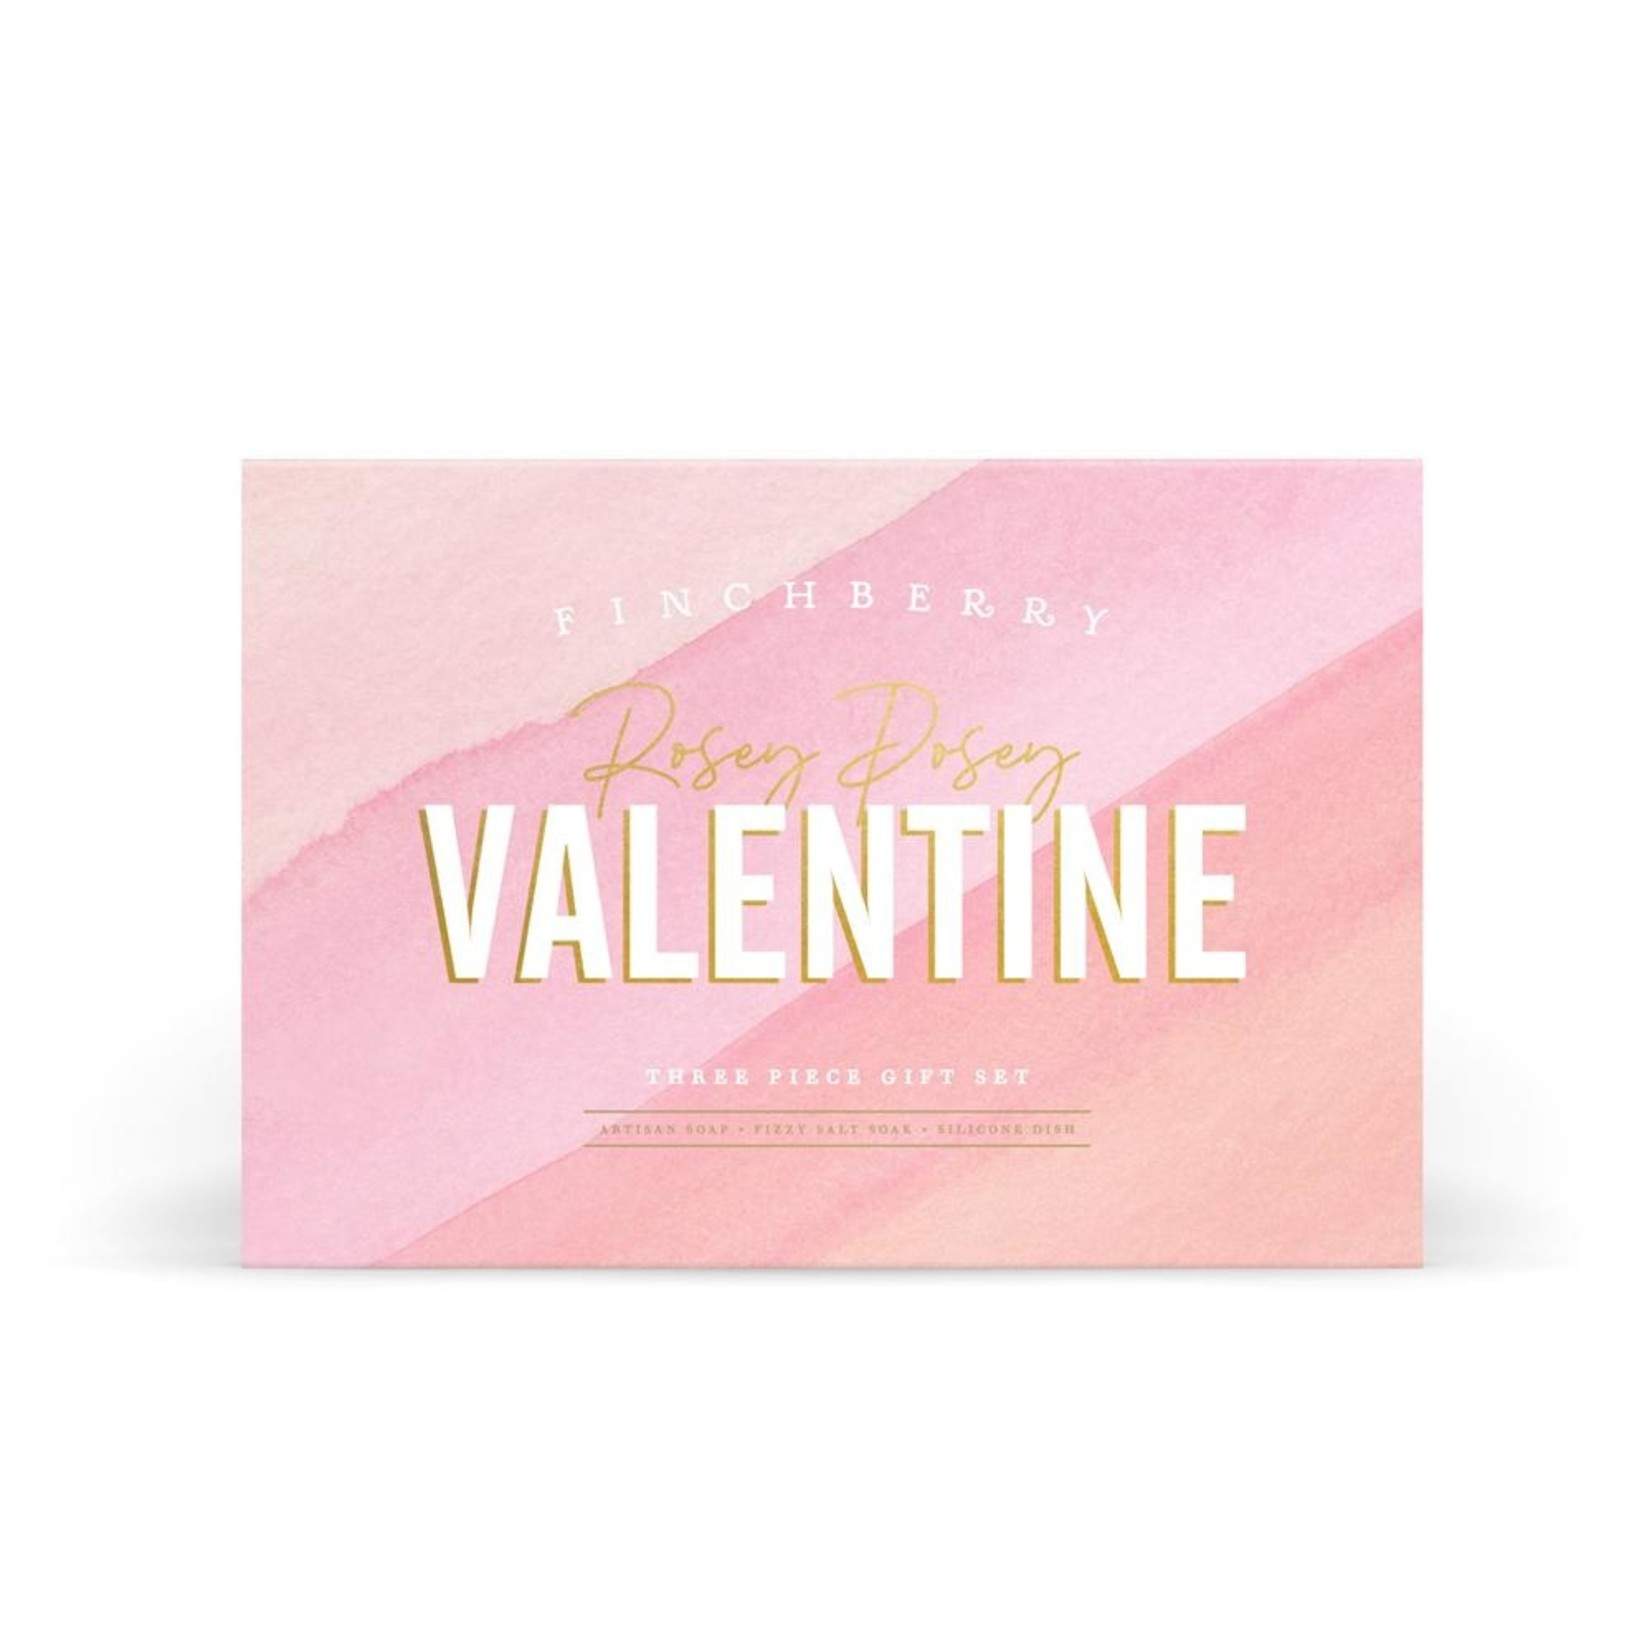 FinchBerry Soapery Rosey Posey Valentine's Day Gift Set